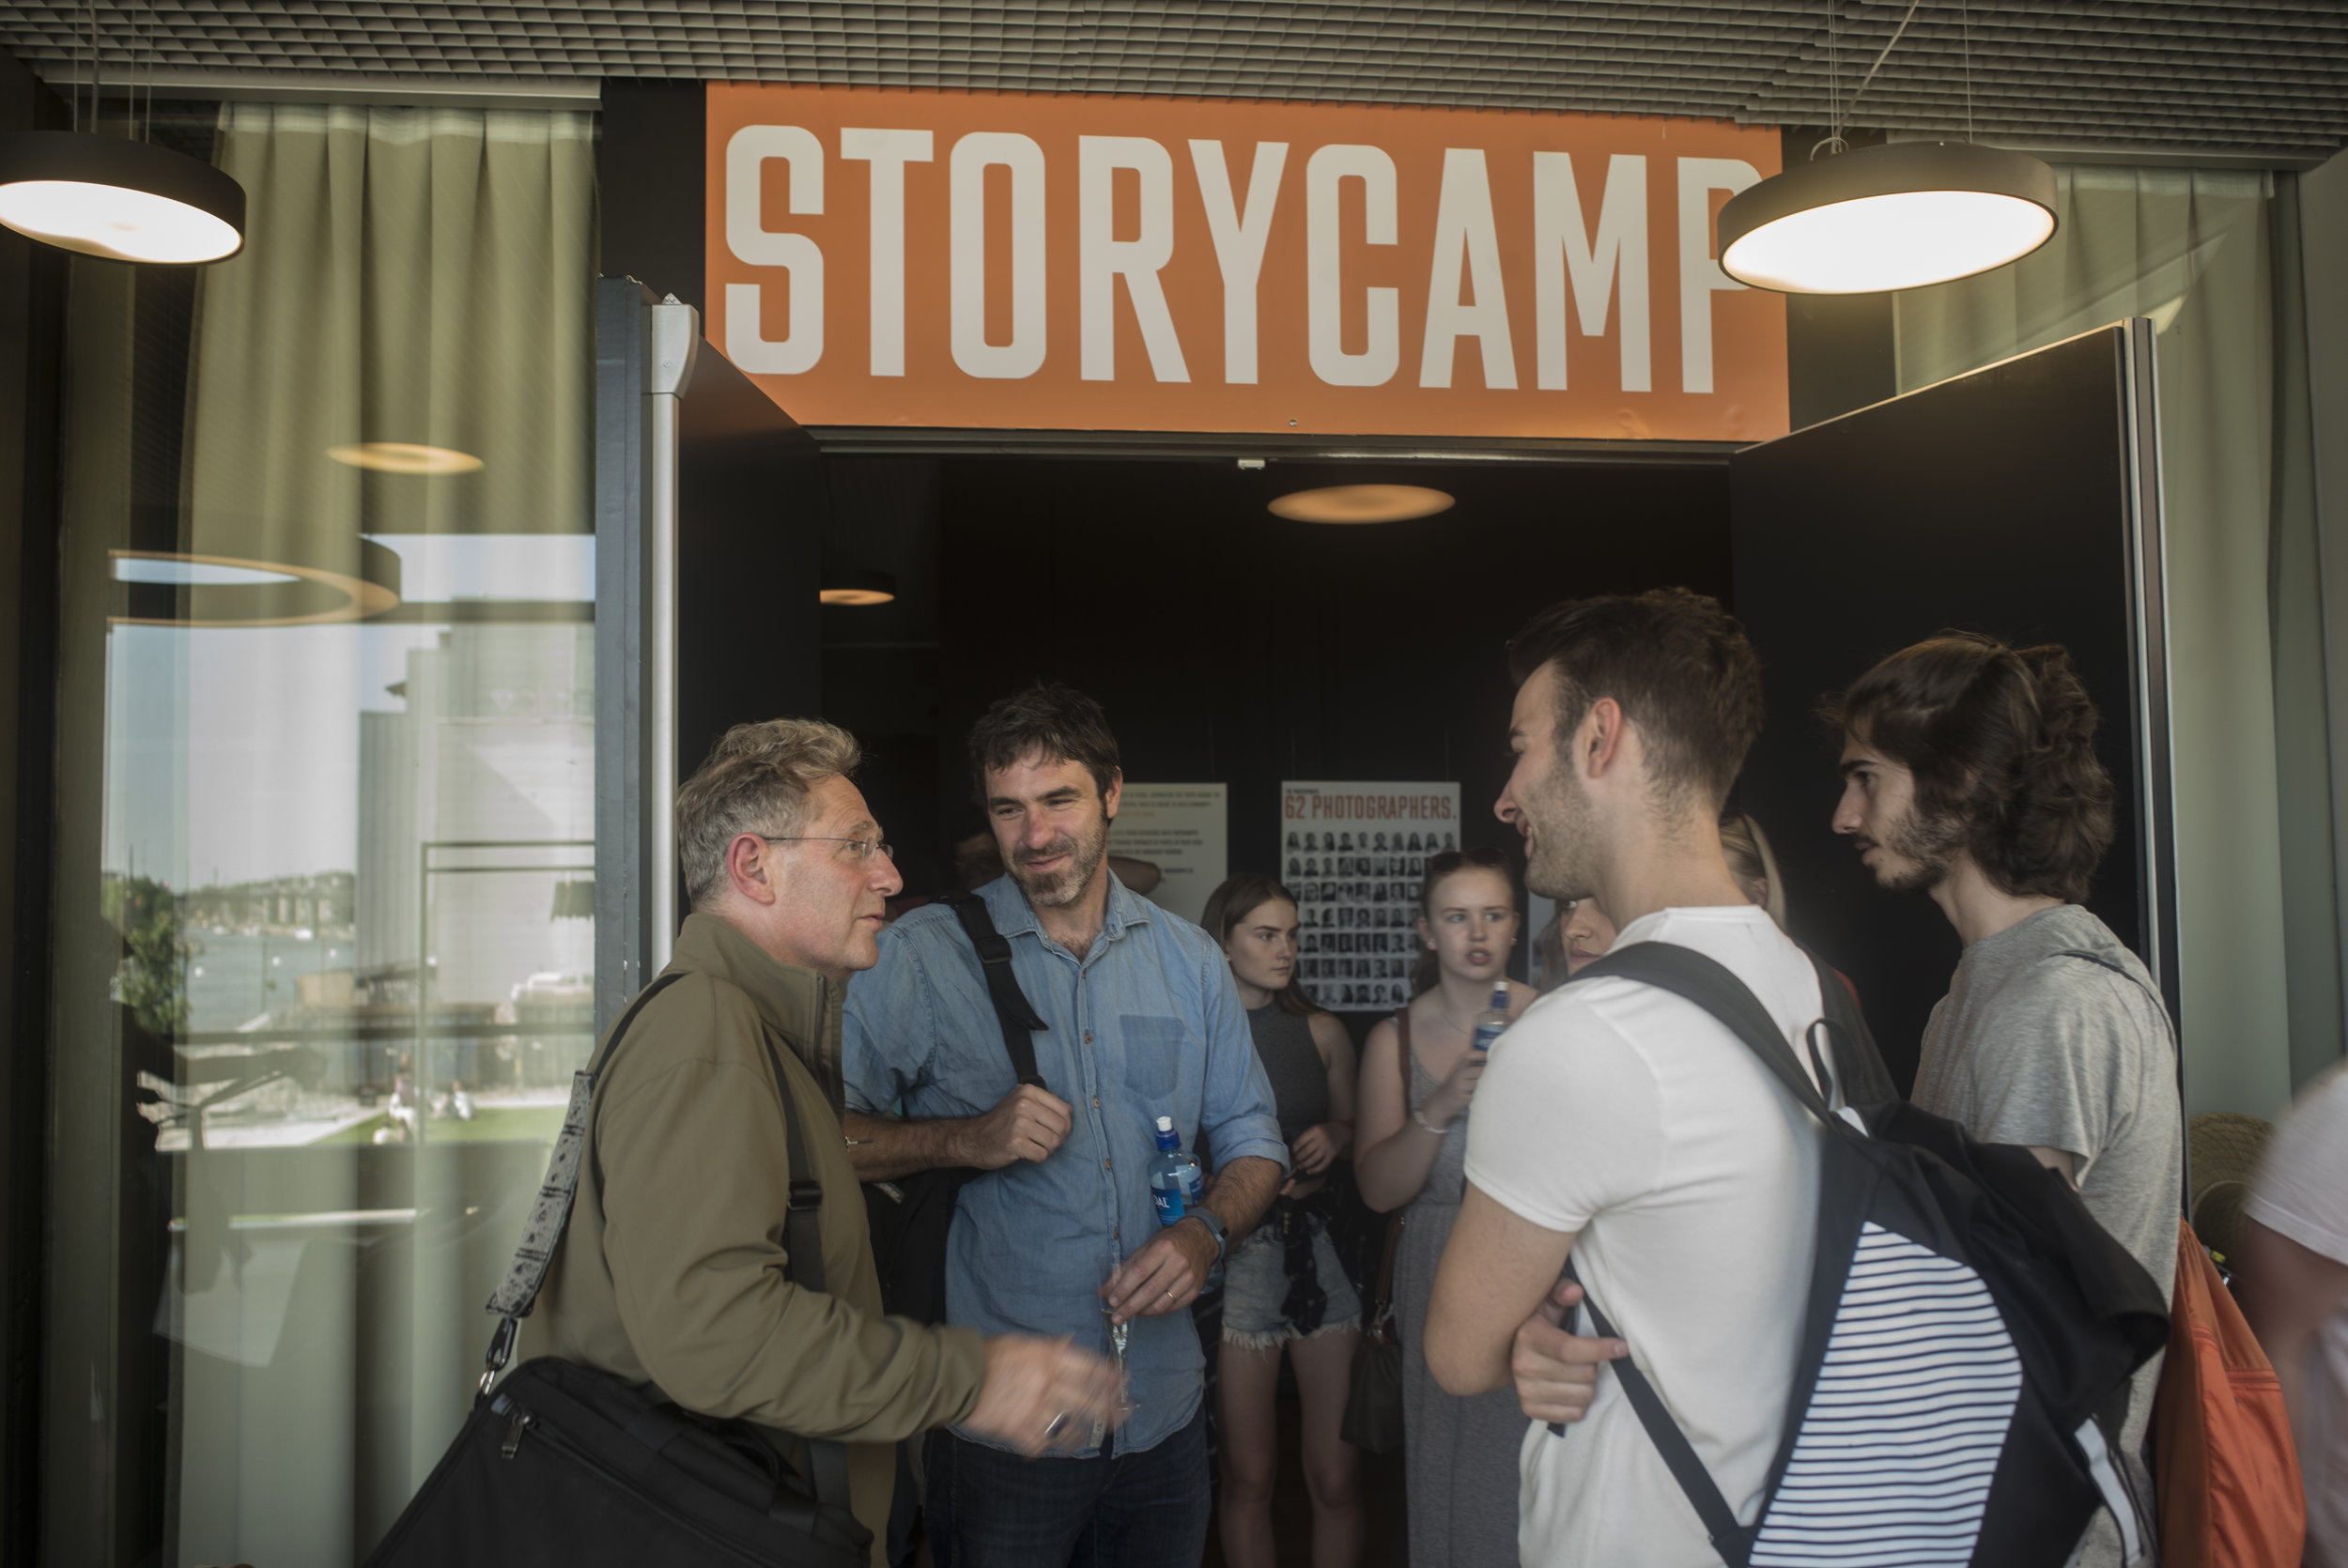 STUART FRANKLIN OF MAGNUM PHOTOS, MARKEL REDONDO FROM PANOS PICTURES TOGETHER WITH SPANISH AND NORWEGIAN STUDENTS OUTSIDE THE STORYCAMP EXHIBTION AT LITTERATURHUSET IN FREDRIKSTAD 2016. PHOTO: ARLY DALE